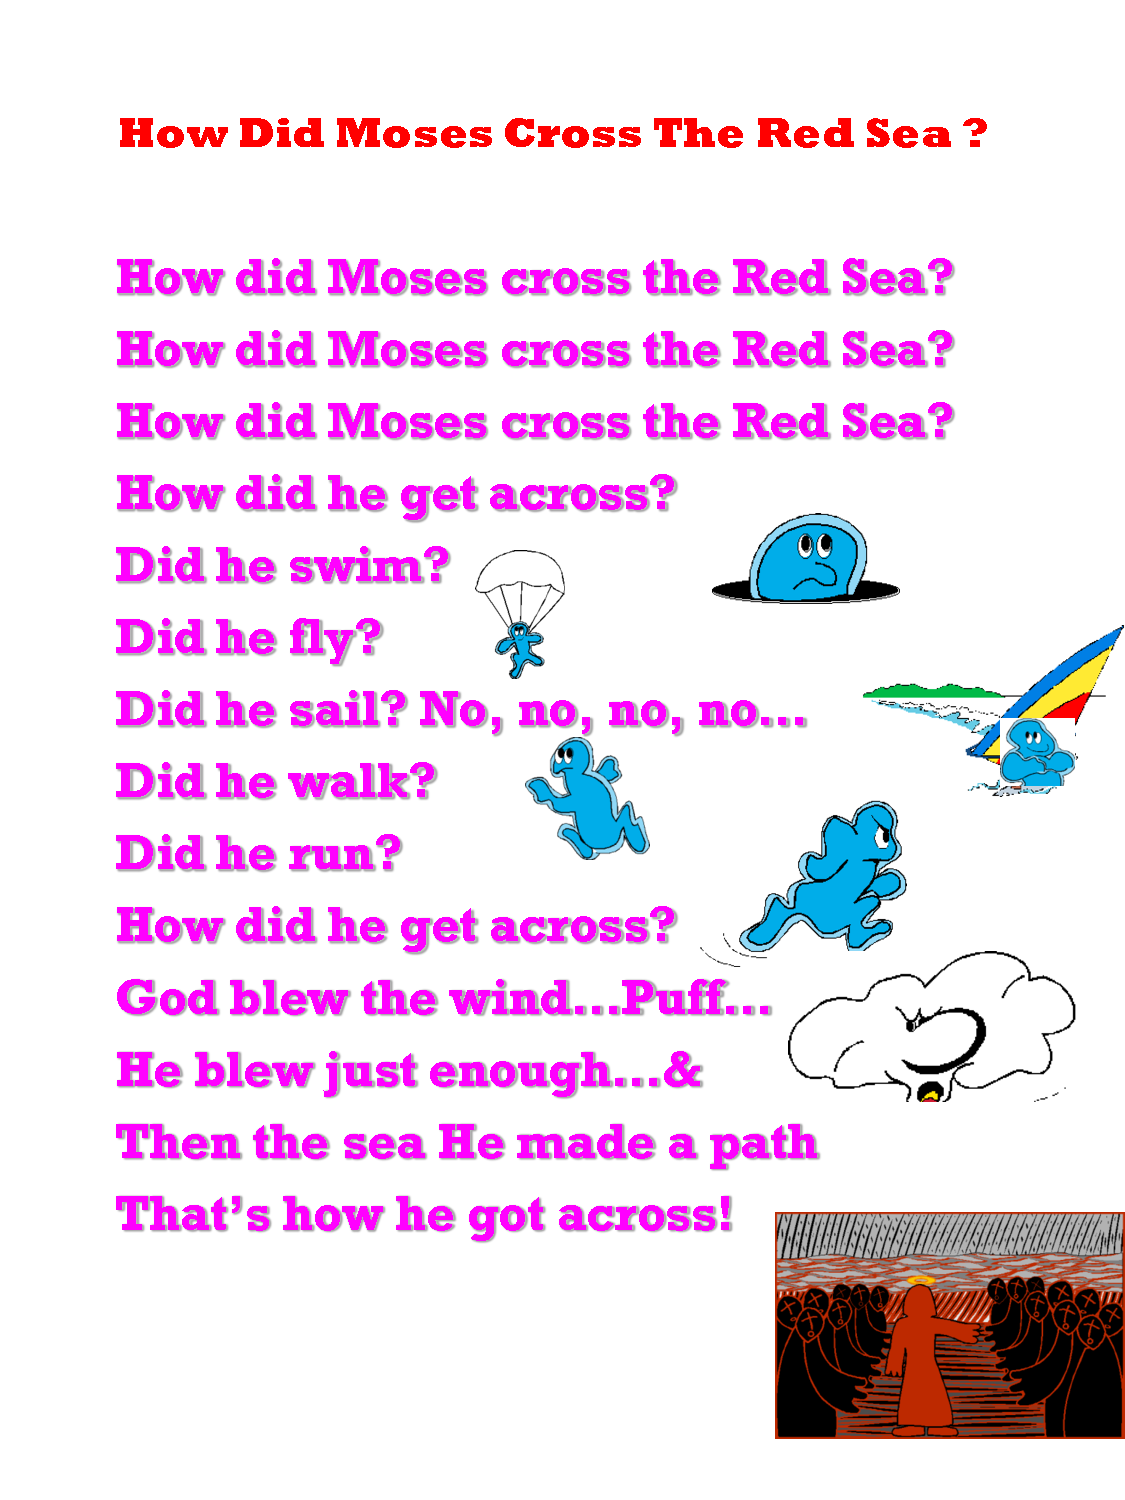 Moses Crosses The Red Sea Song